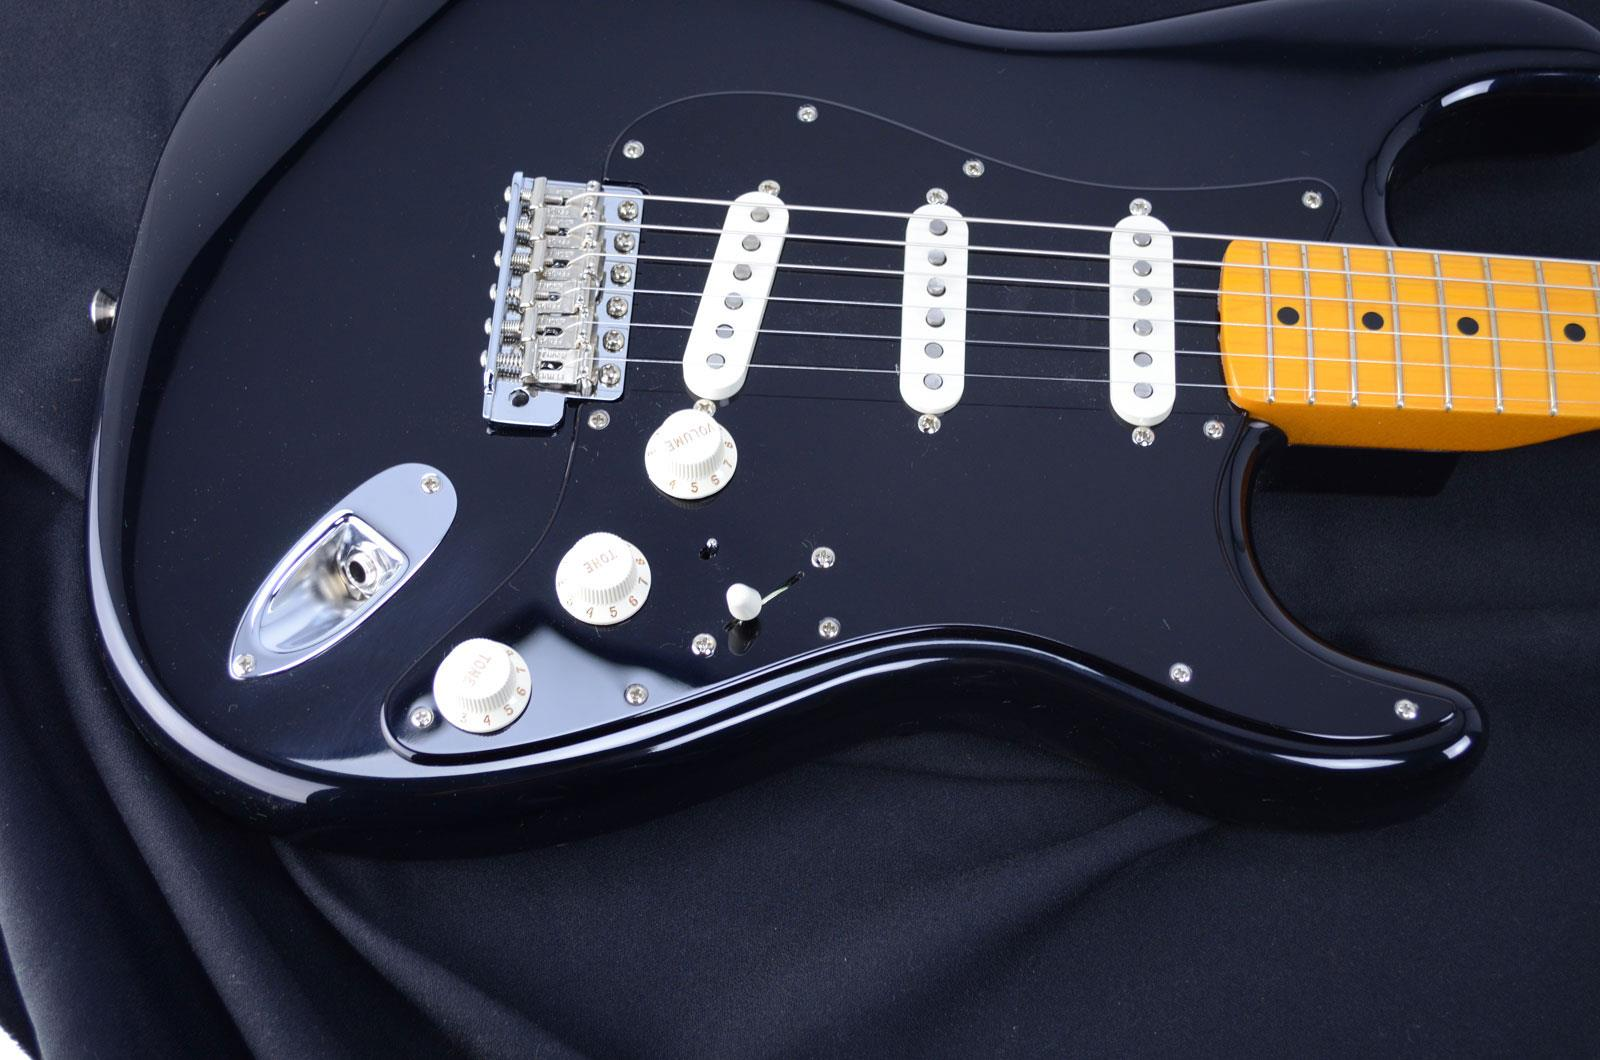 fender stratocaster tbx wiring diagram vw bug get free image about